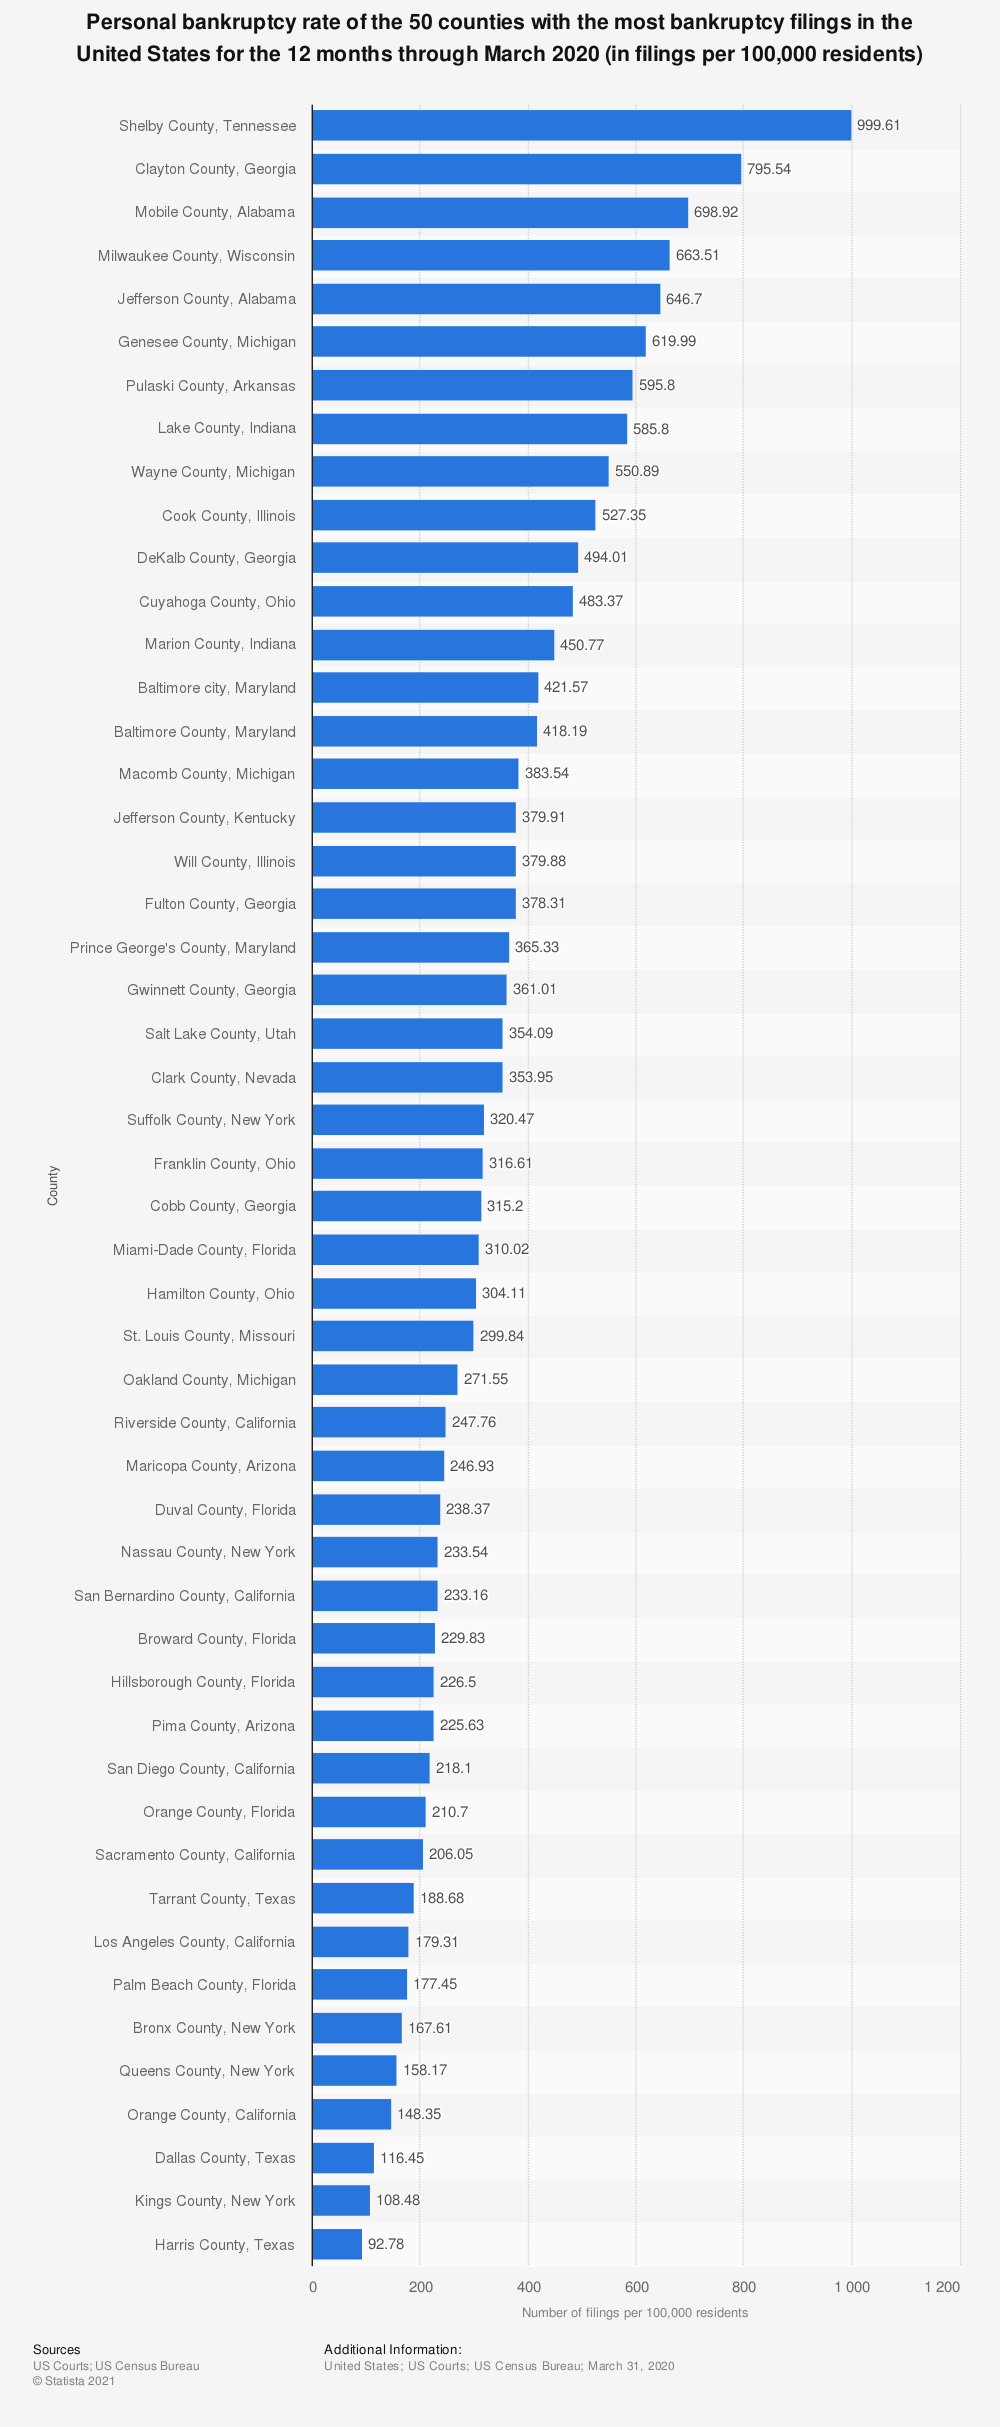 Statistic: Personal bankruptcy rate of the 50 counties with the most bankruptcy filings in the United States for the 12 months through March 2020 (in filings per 100,000 residents) | Statista